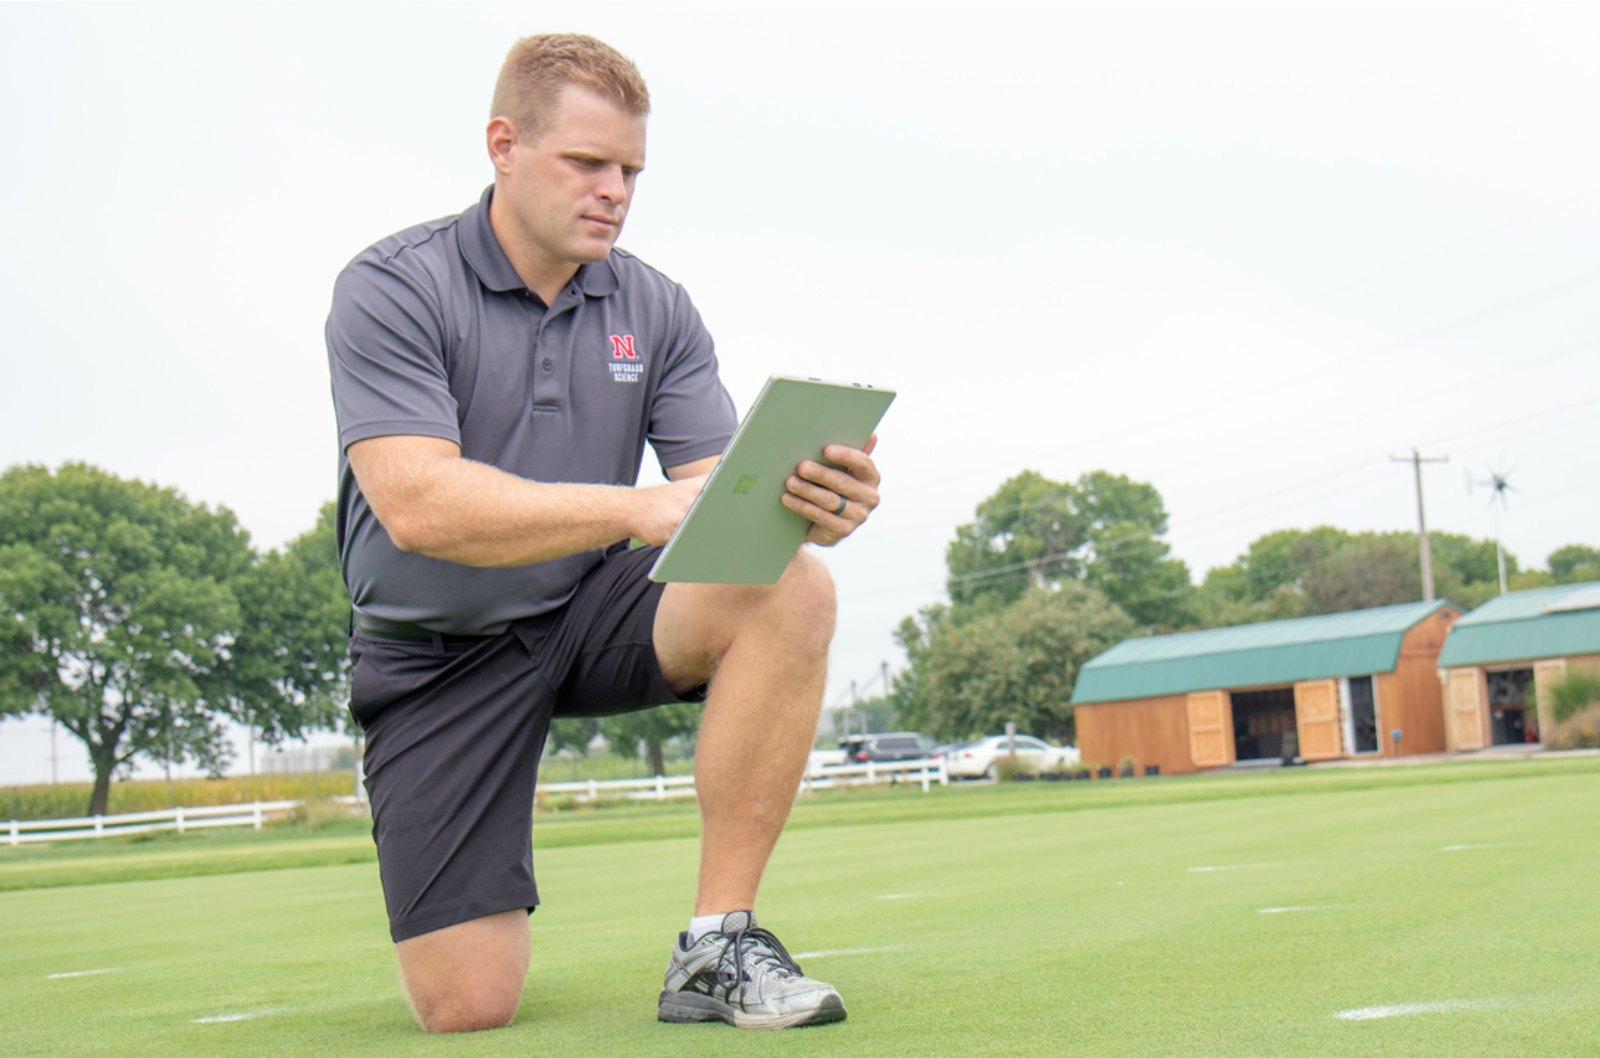 Nebraska Turfgrass Tech Means the Grass is Always Greener